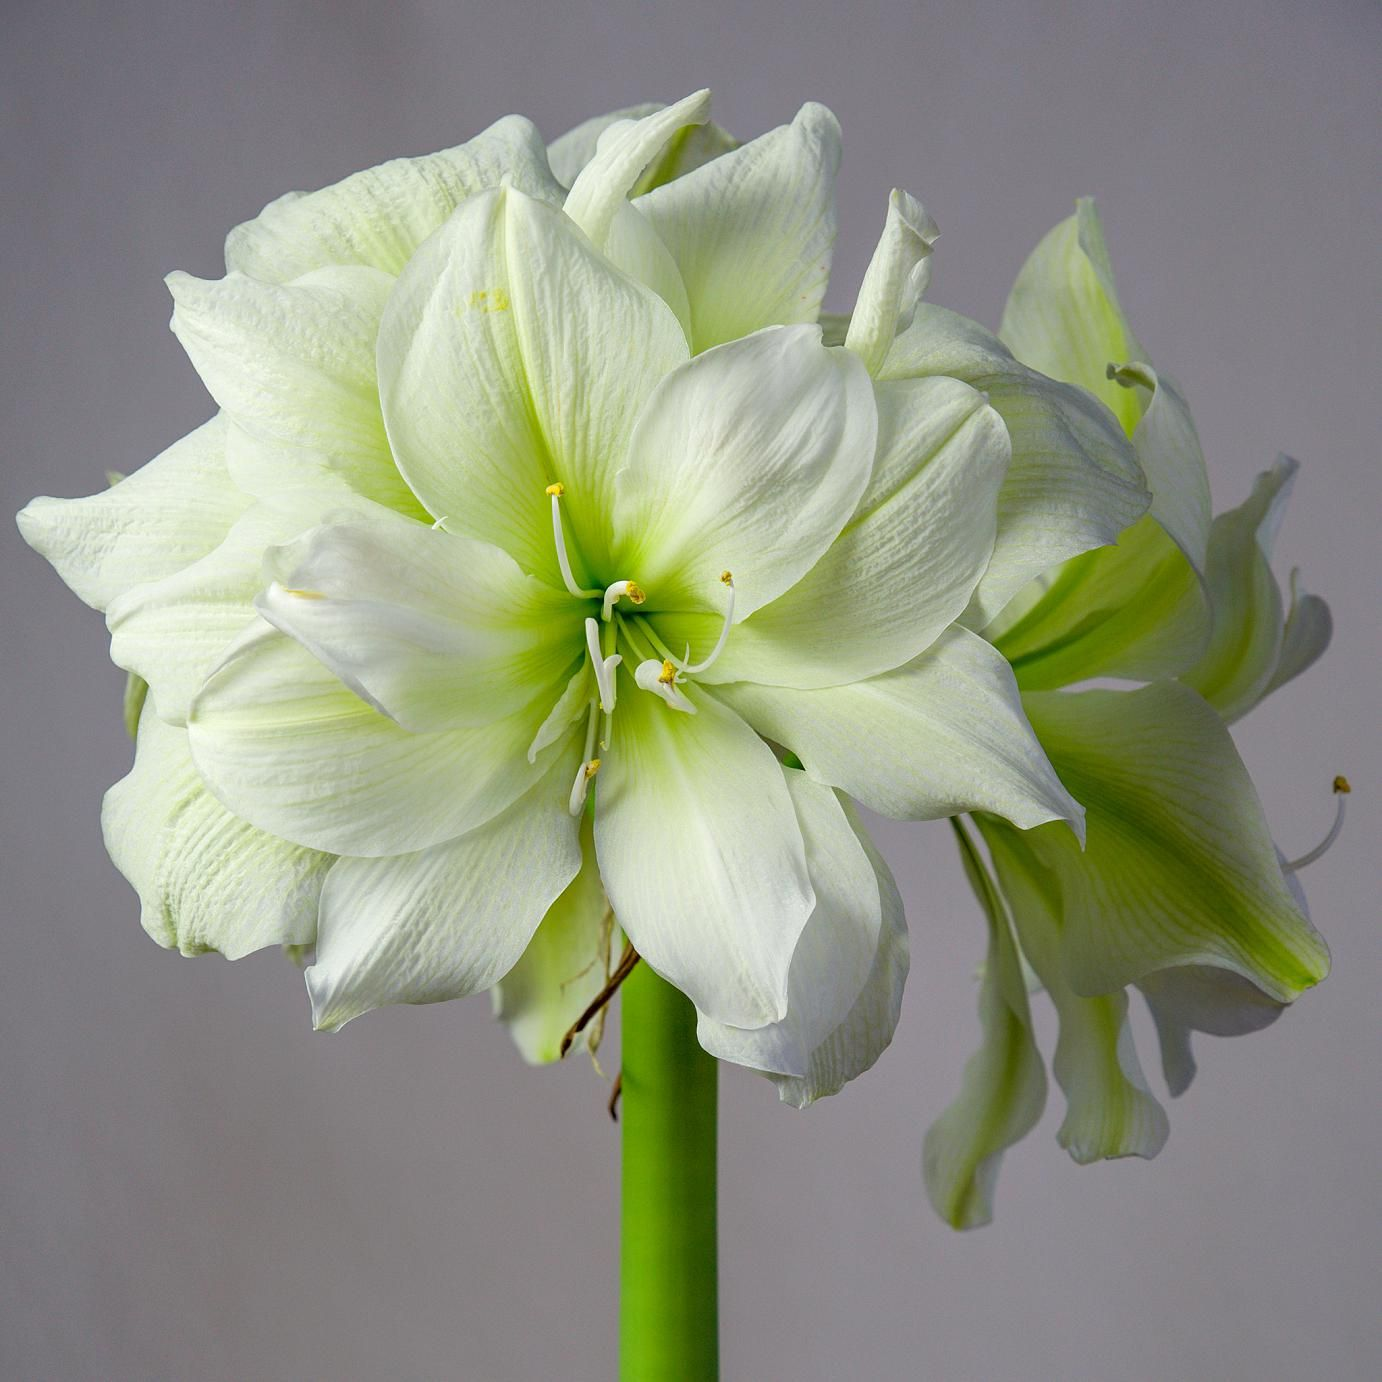 White Flower Pots For Sale Amaryllis Bulbs Amaryllis Marilyn For Sale The